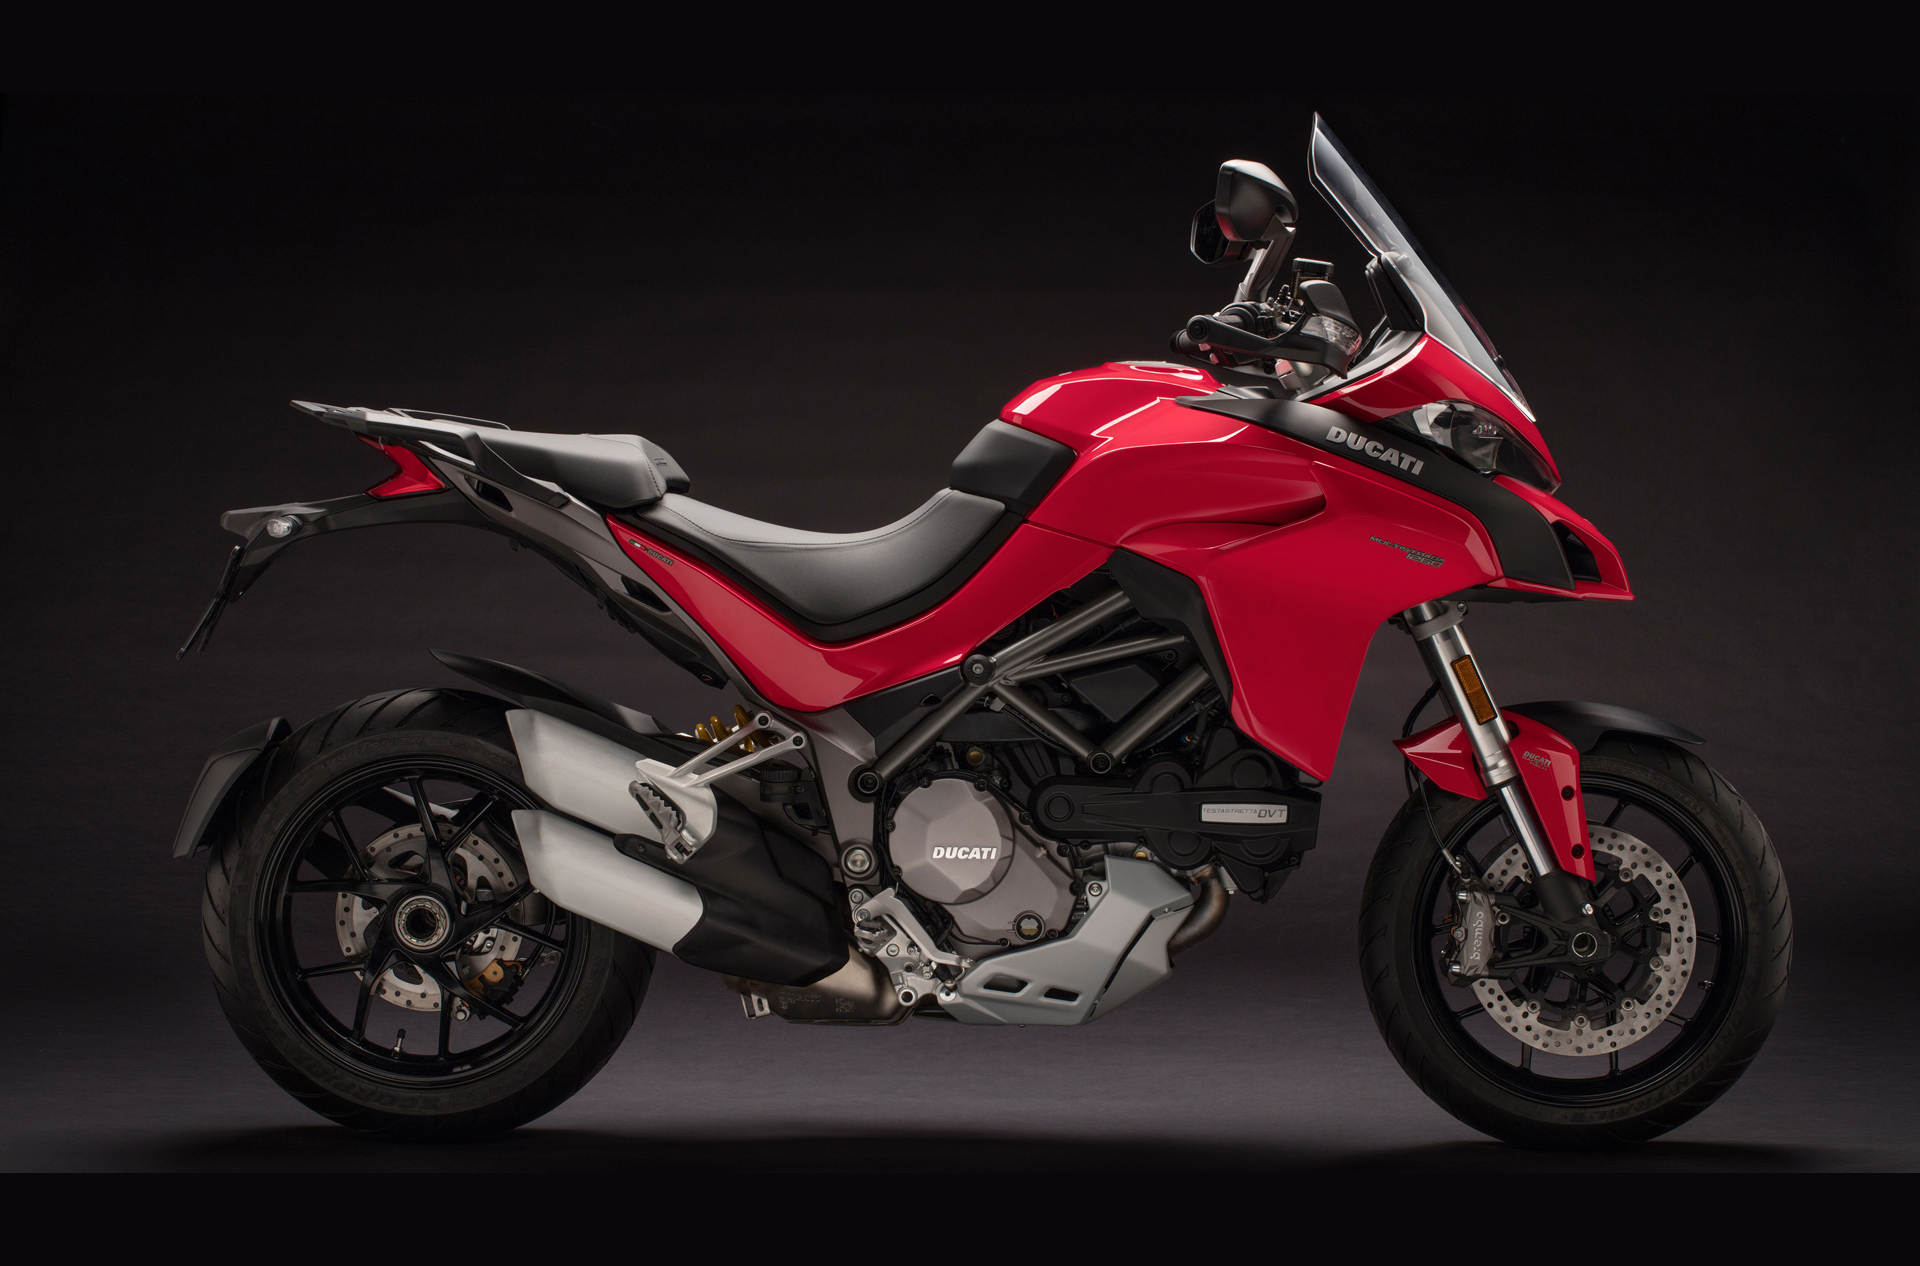 Ducati Introduces Multistrada 1260 Family (with videos)